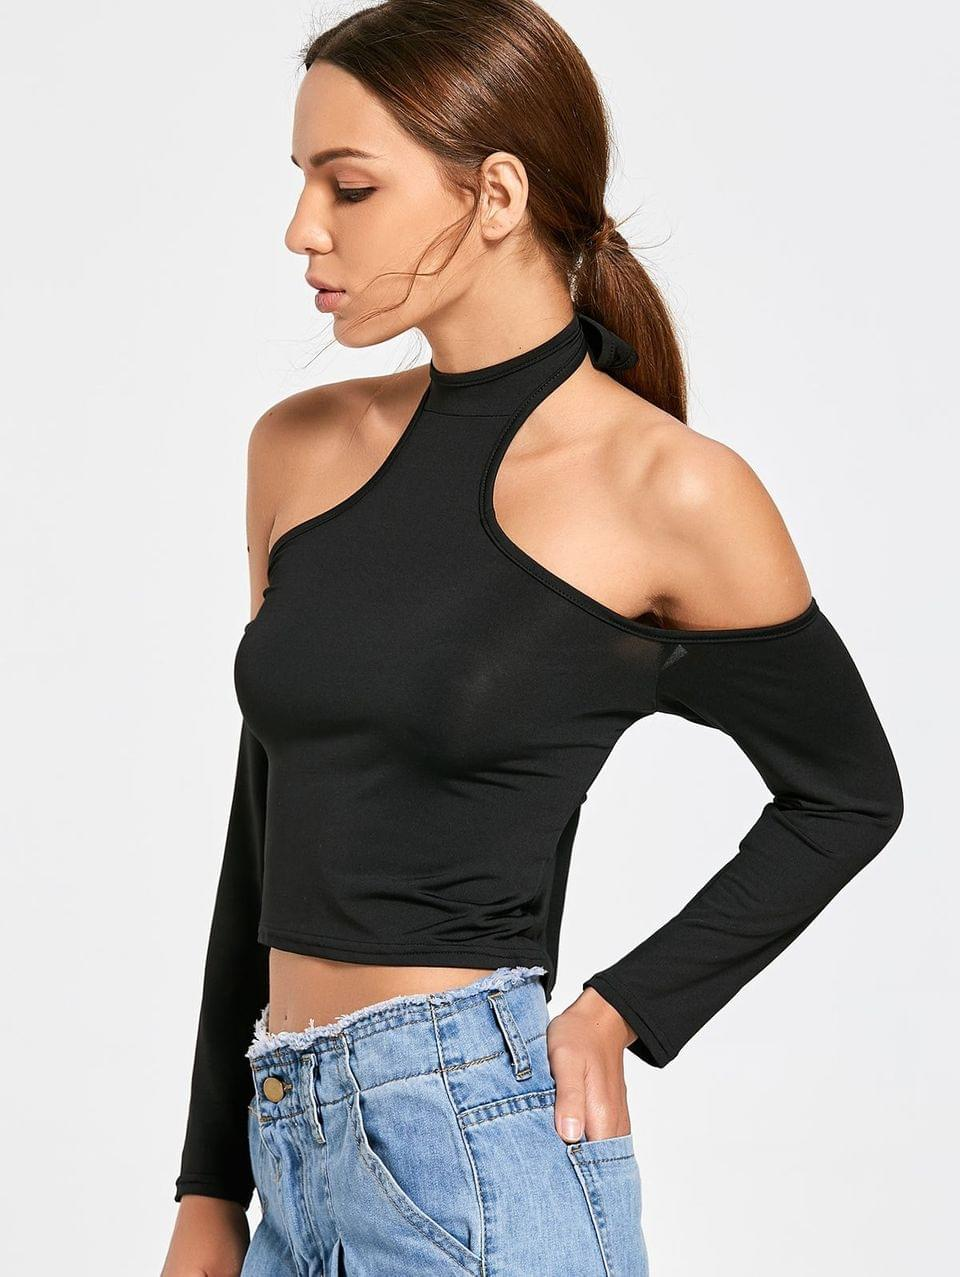 Women's Fitted Halter Cropped T-shirt - Black Xl